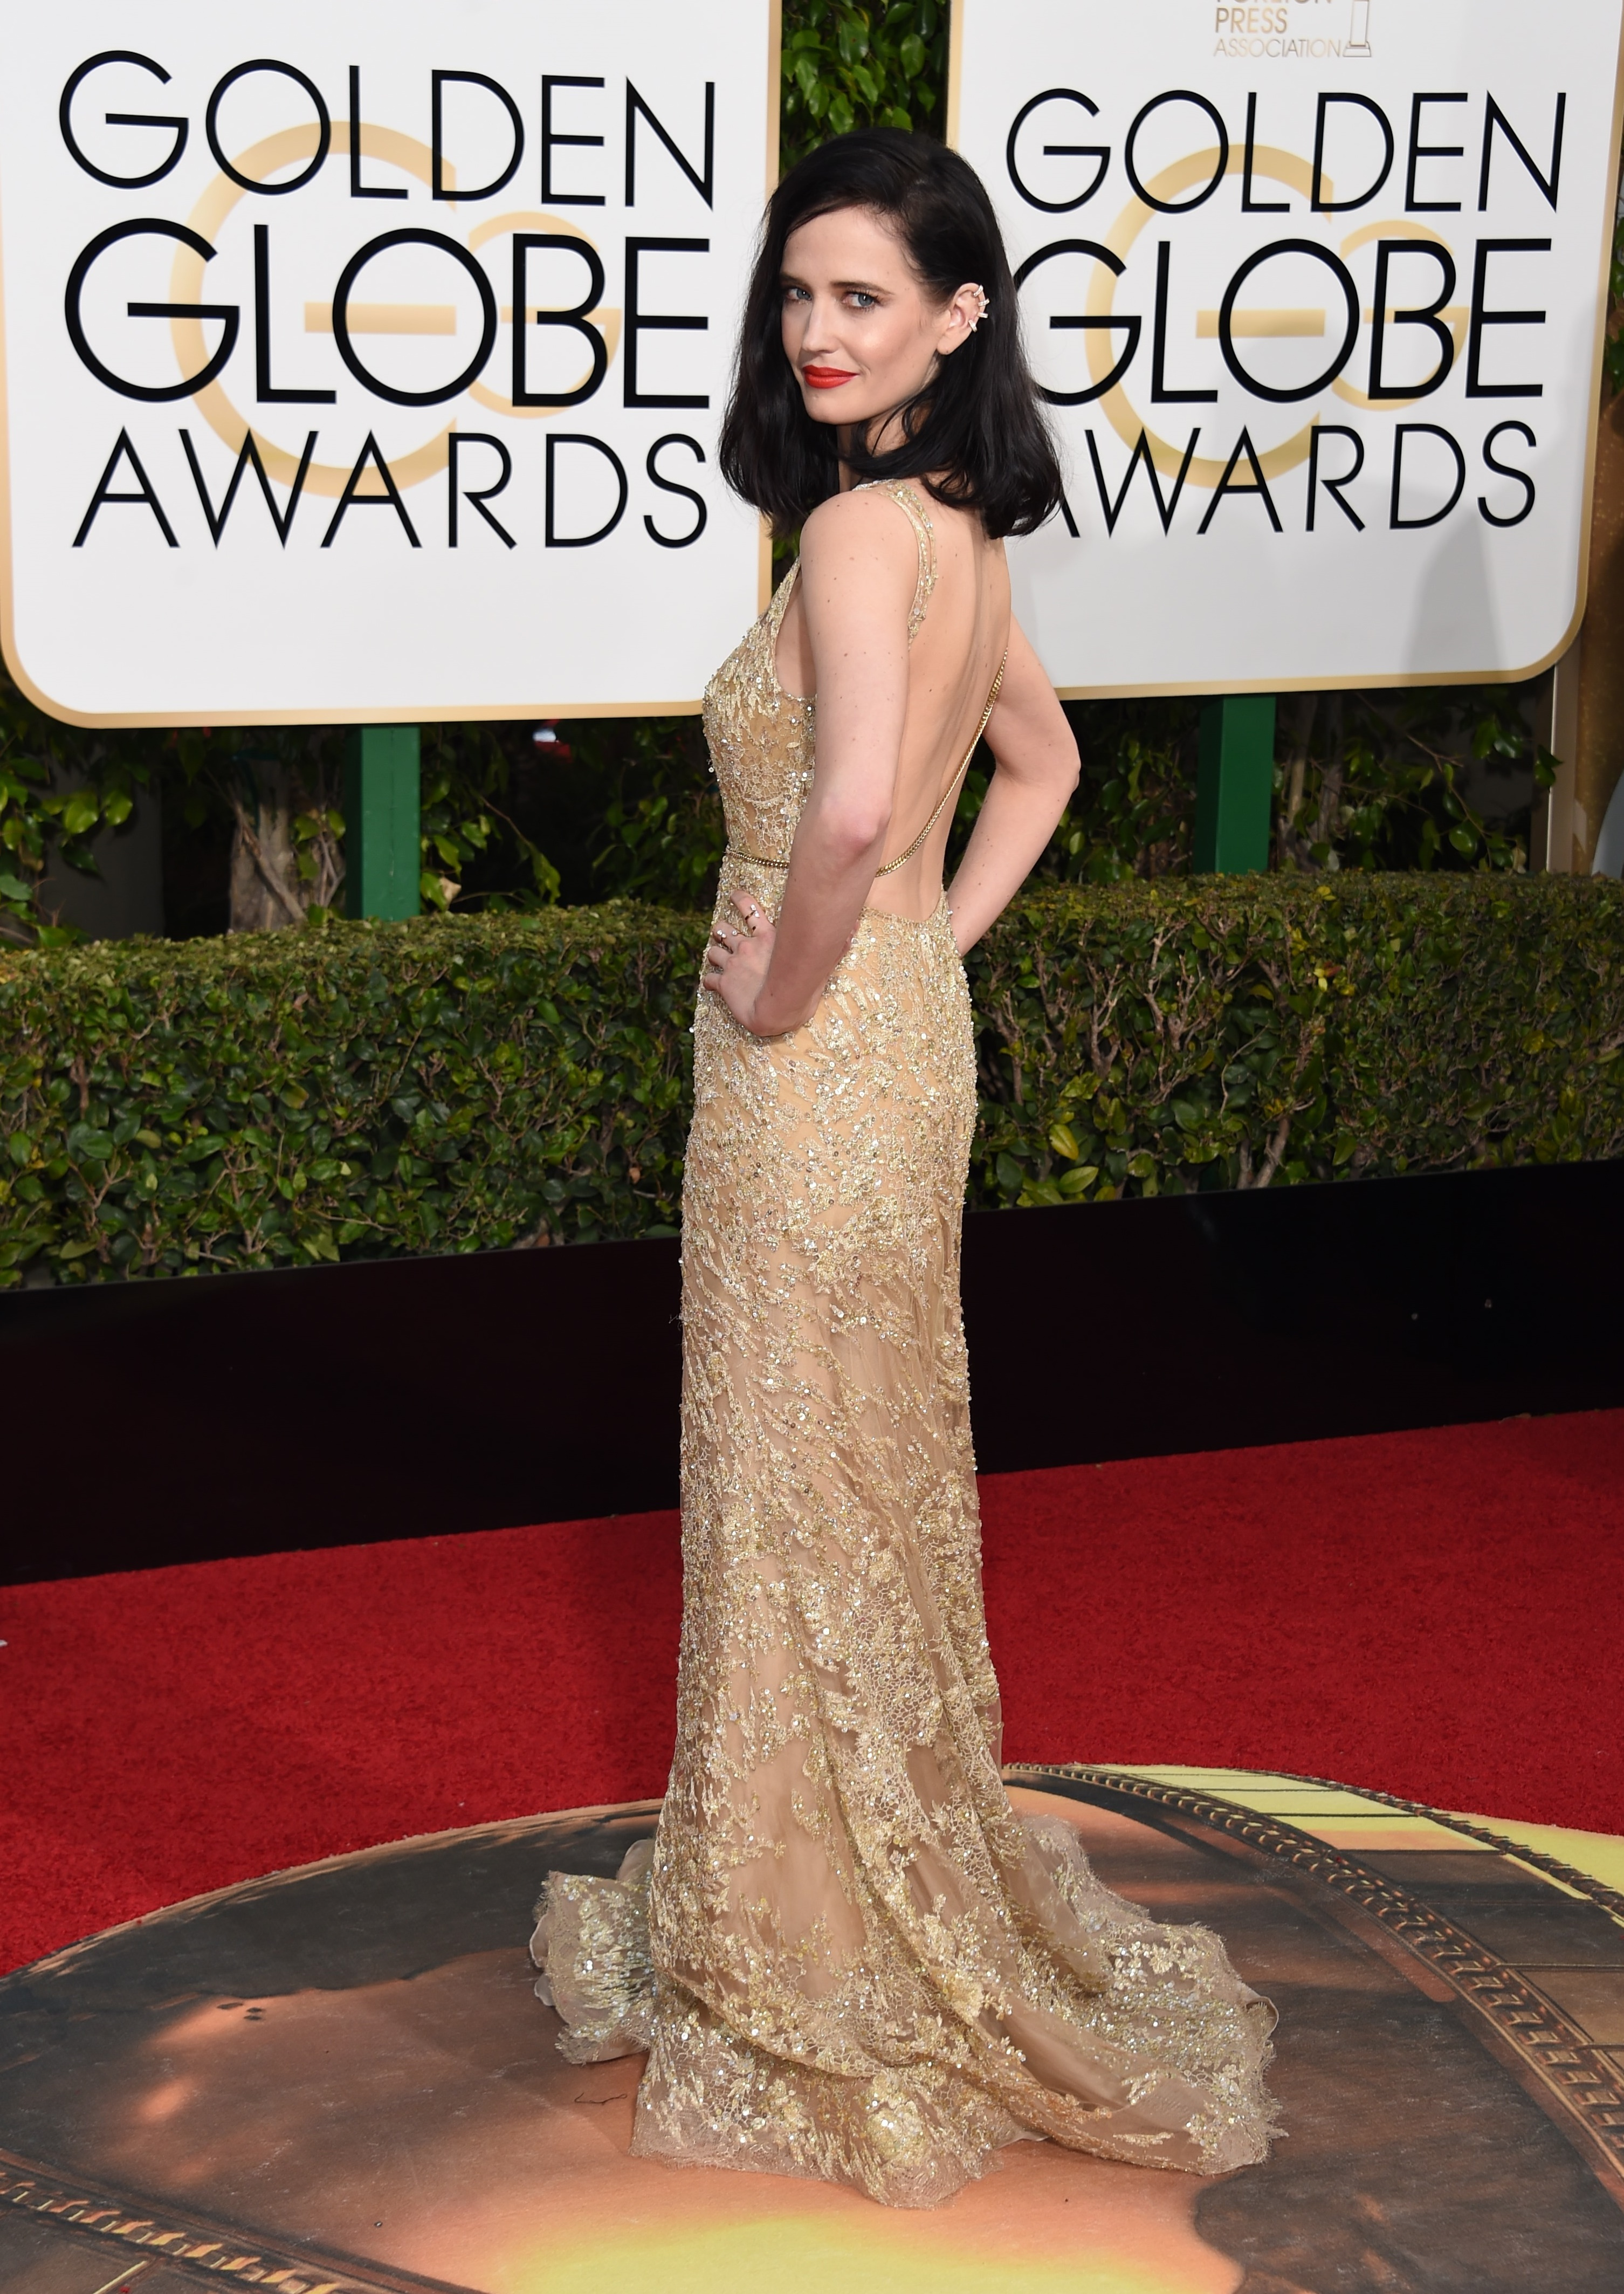 Eva Green arrives to the 73rd Annual Golden Globe Awards on Jan. 10, 2016 in Beverly Hills.